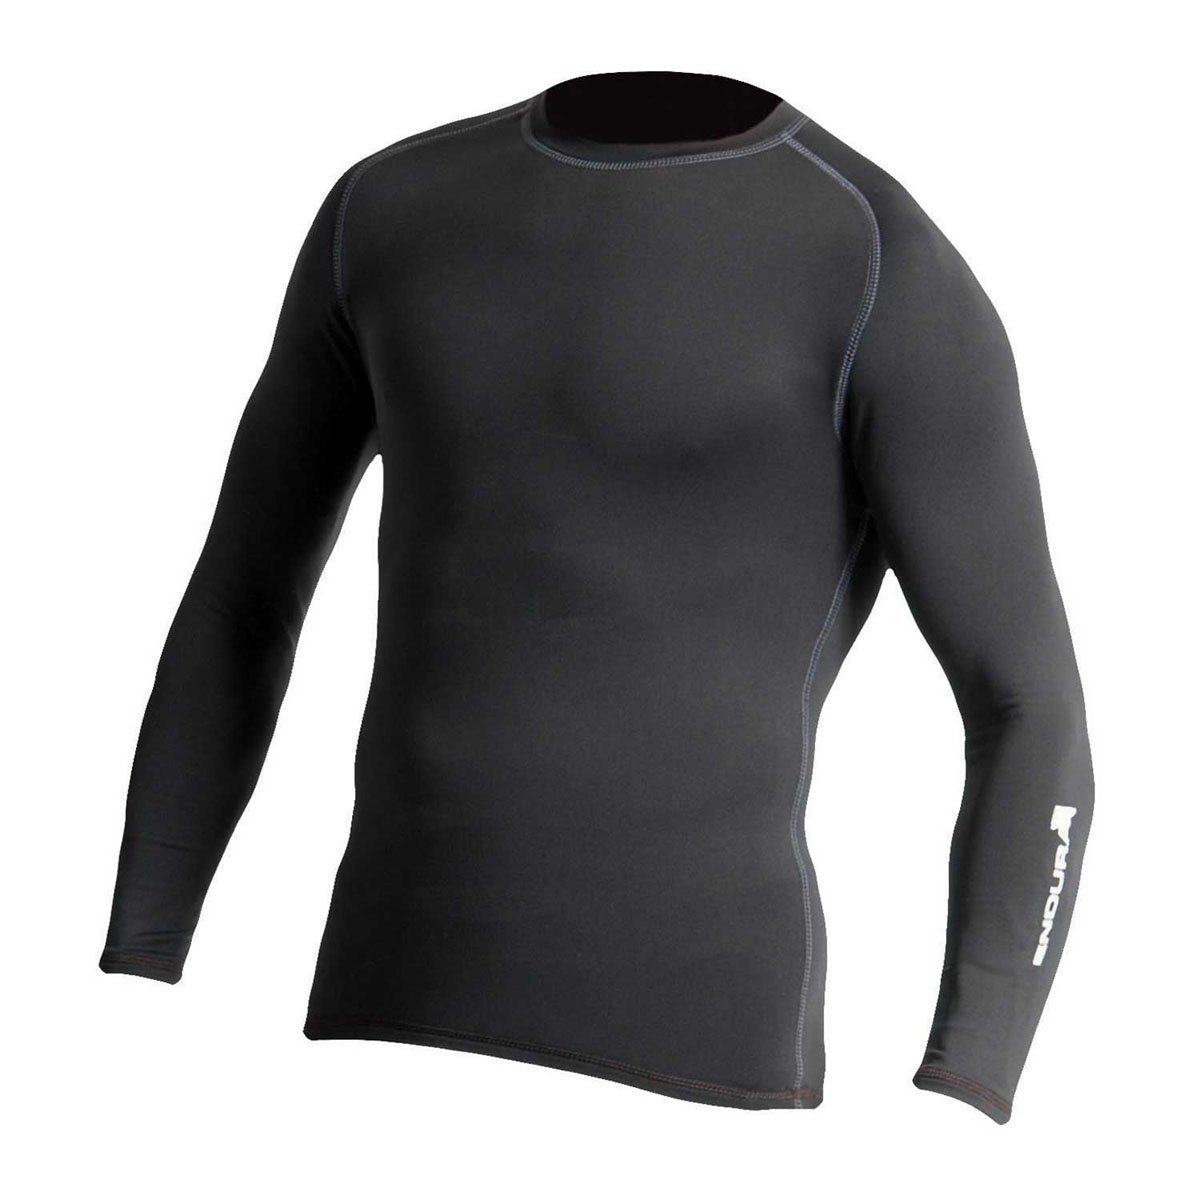 7ab10144e Get Quotations · Endura Frontline Cycling Winter Baselayer